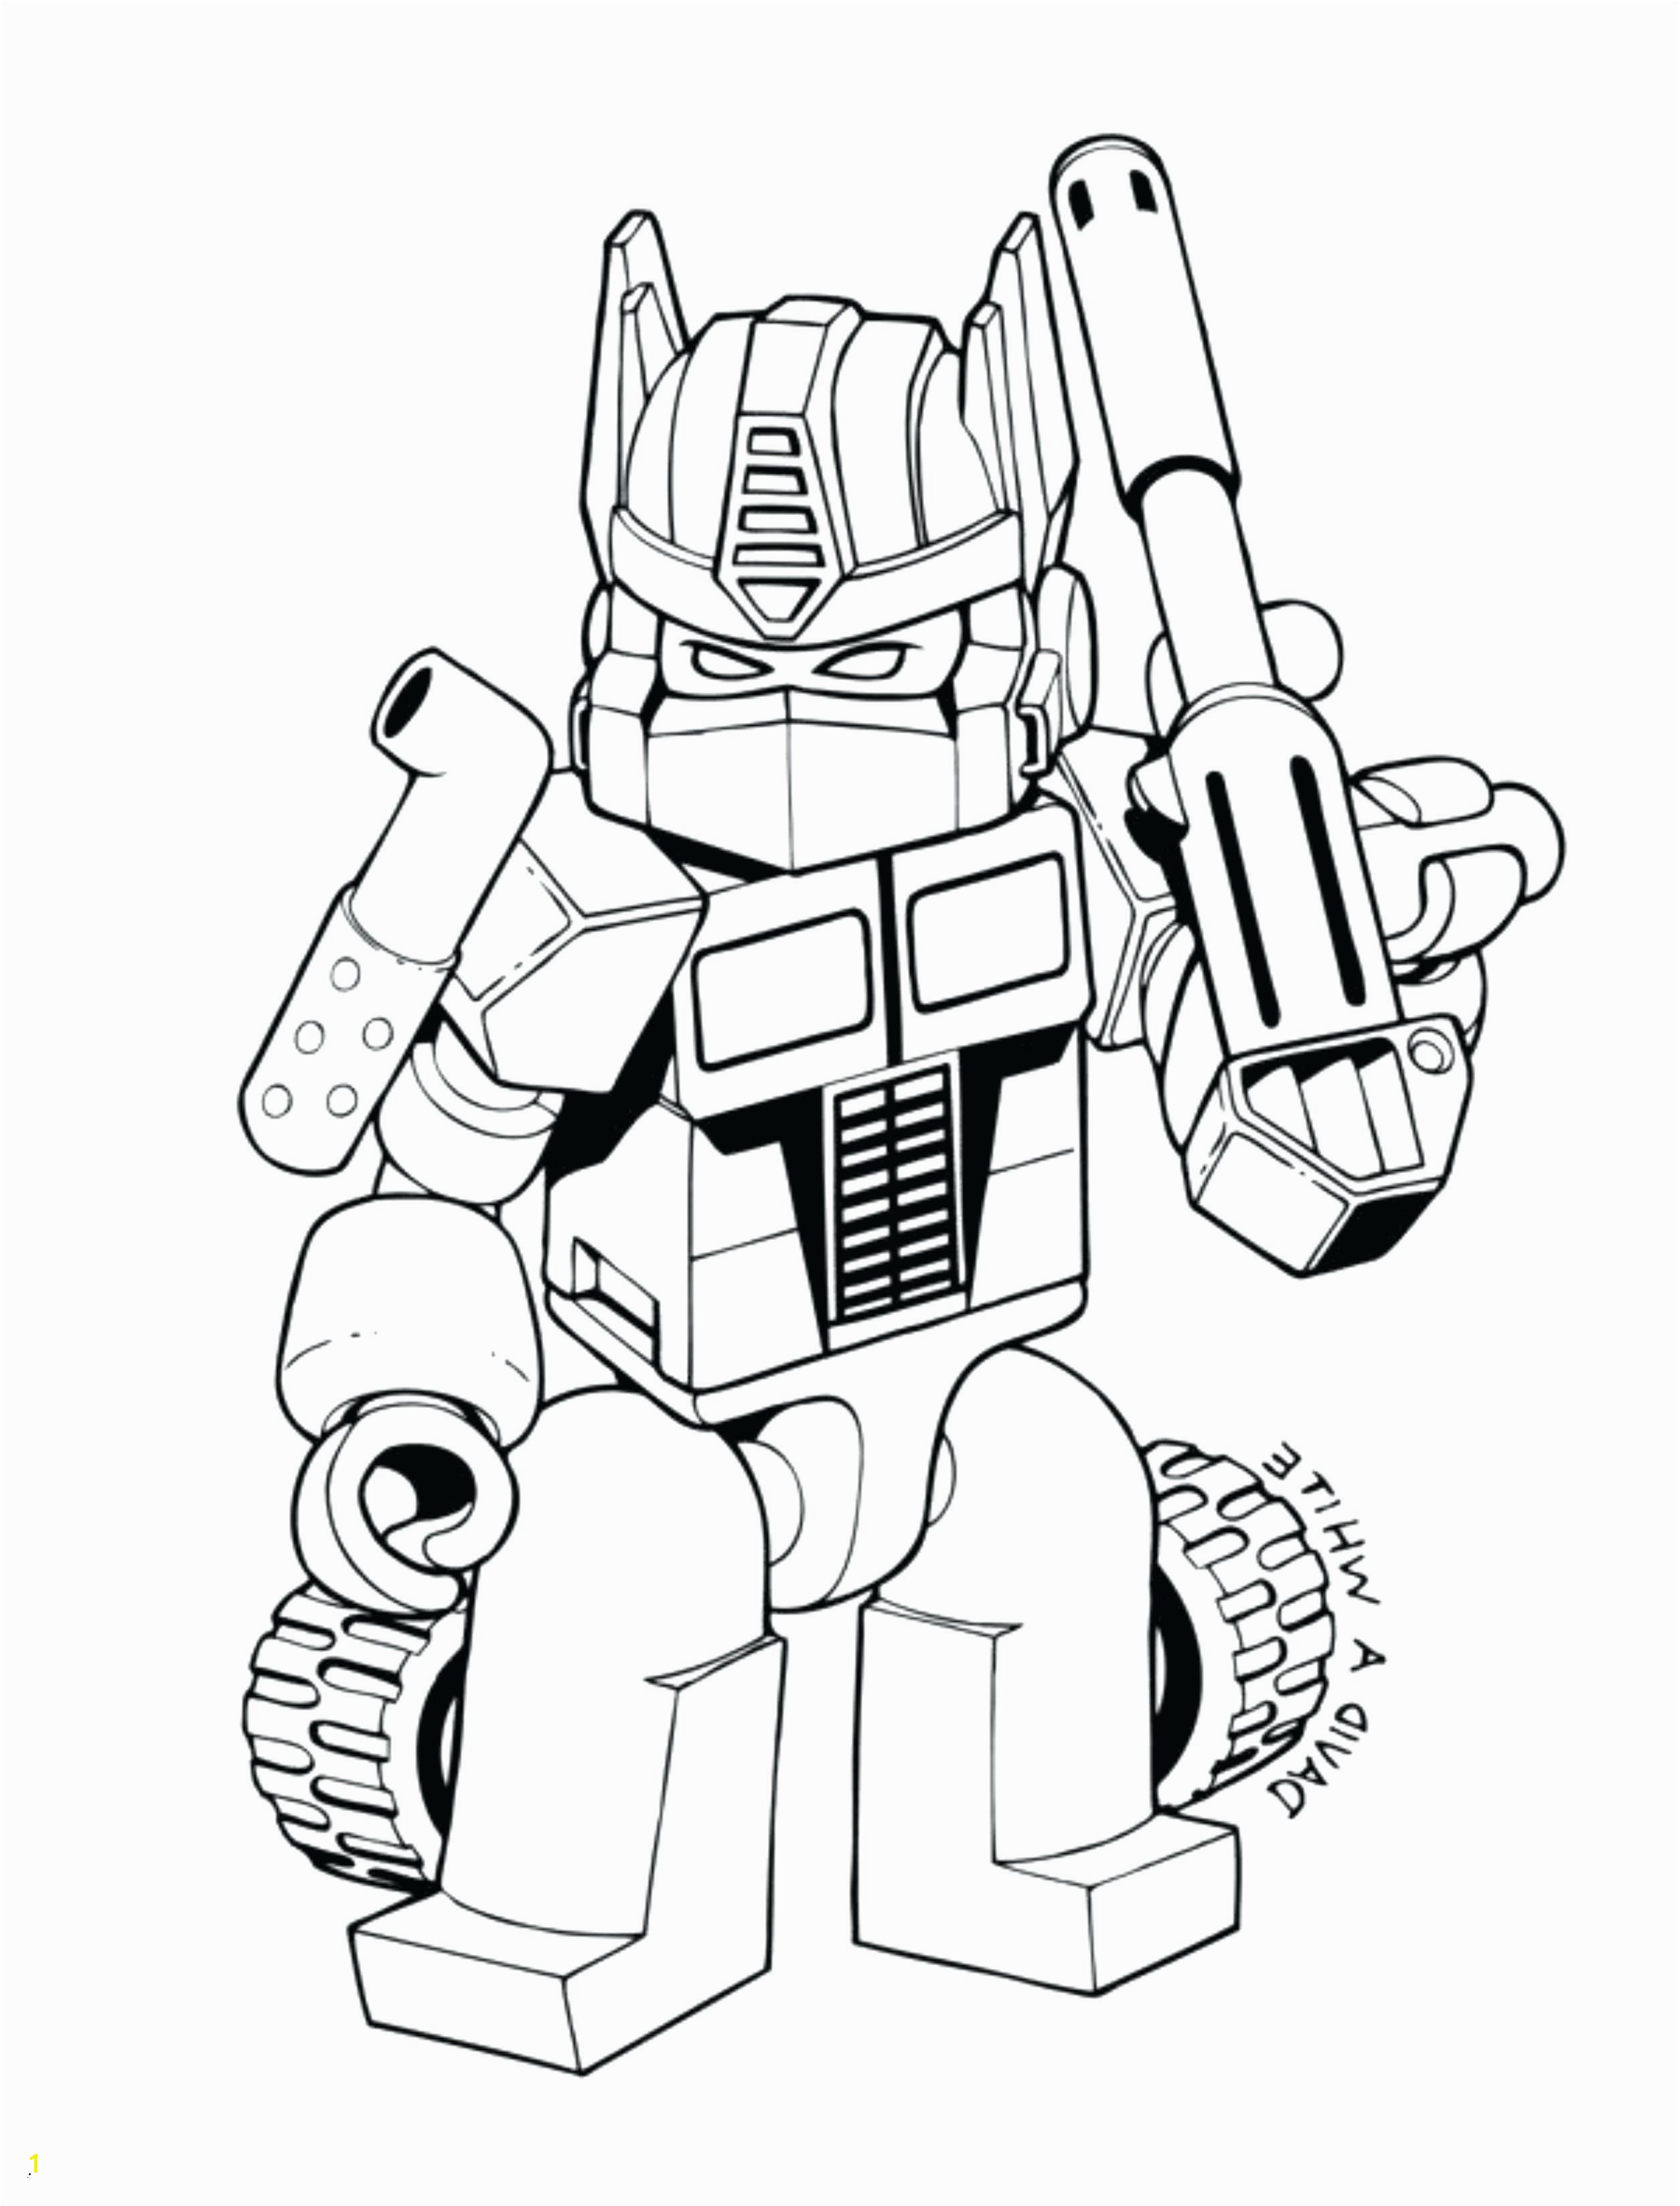 Bumblebee Transformer Coloring Pages Coloring Pages Coloring Pages Elegant Ausmalbilder Transformers Bumblebee